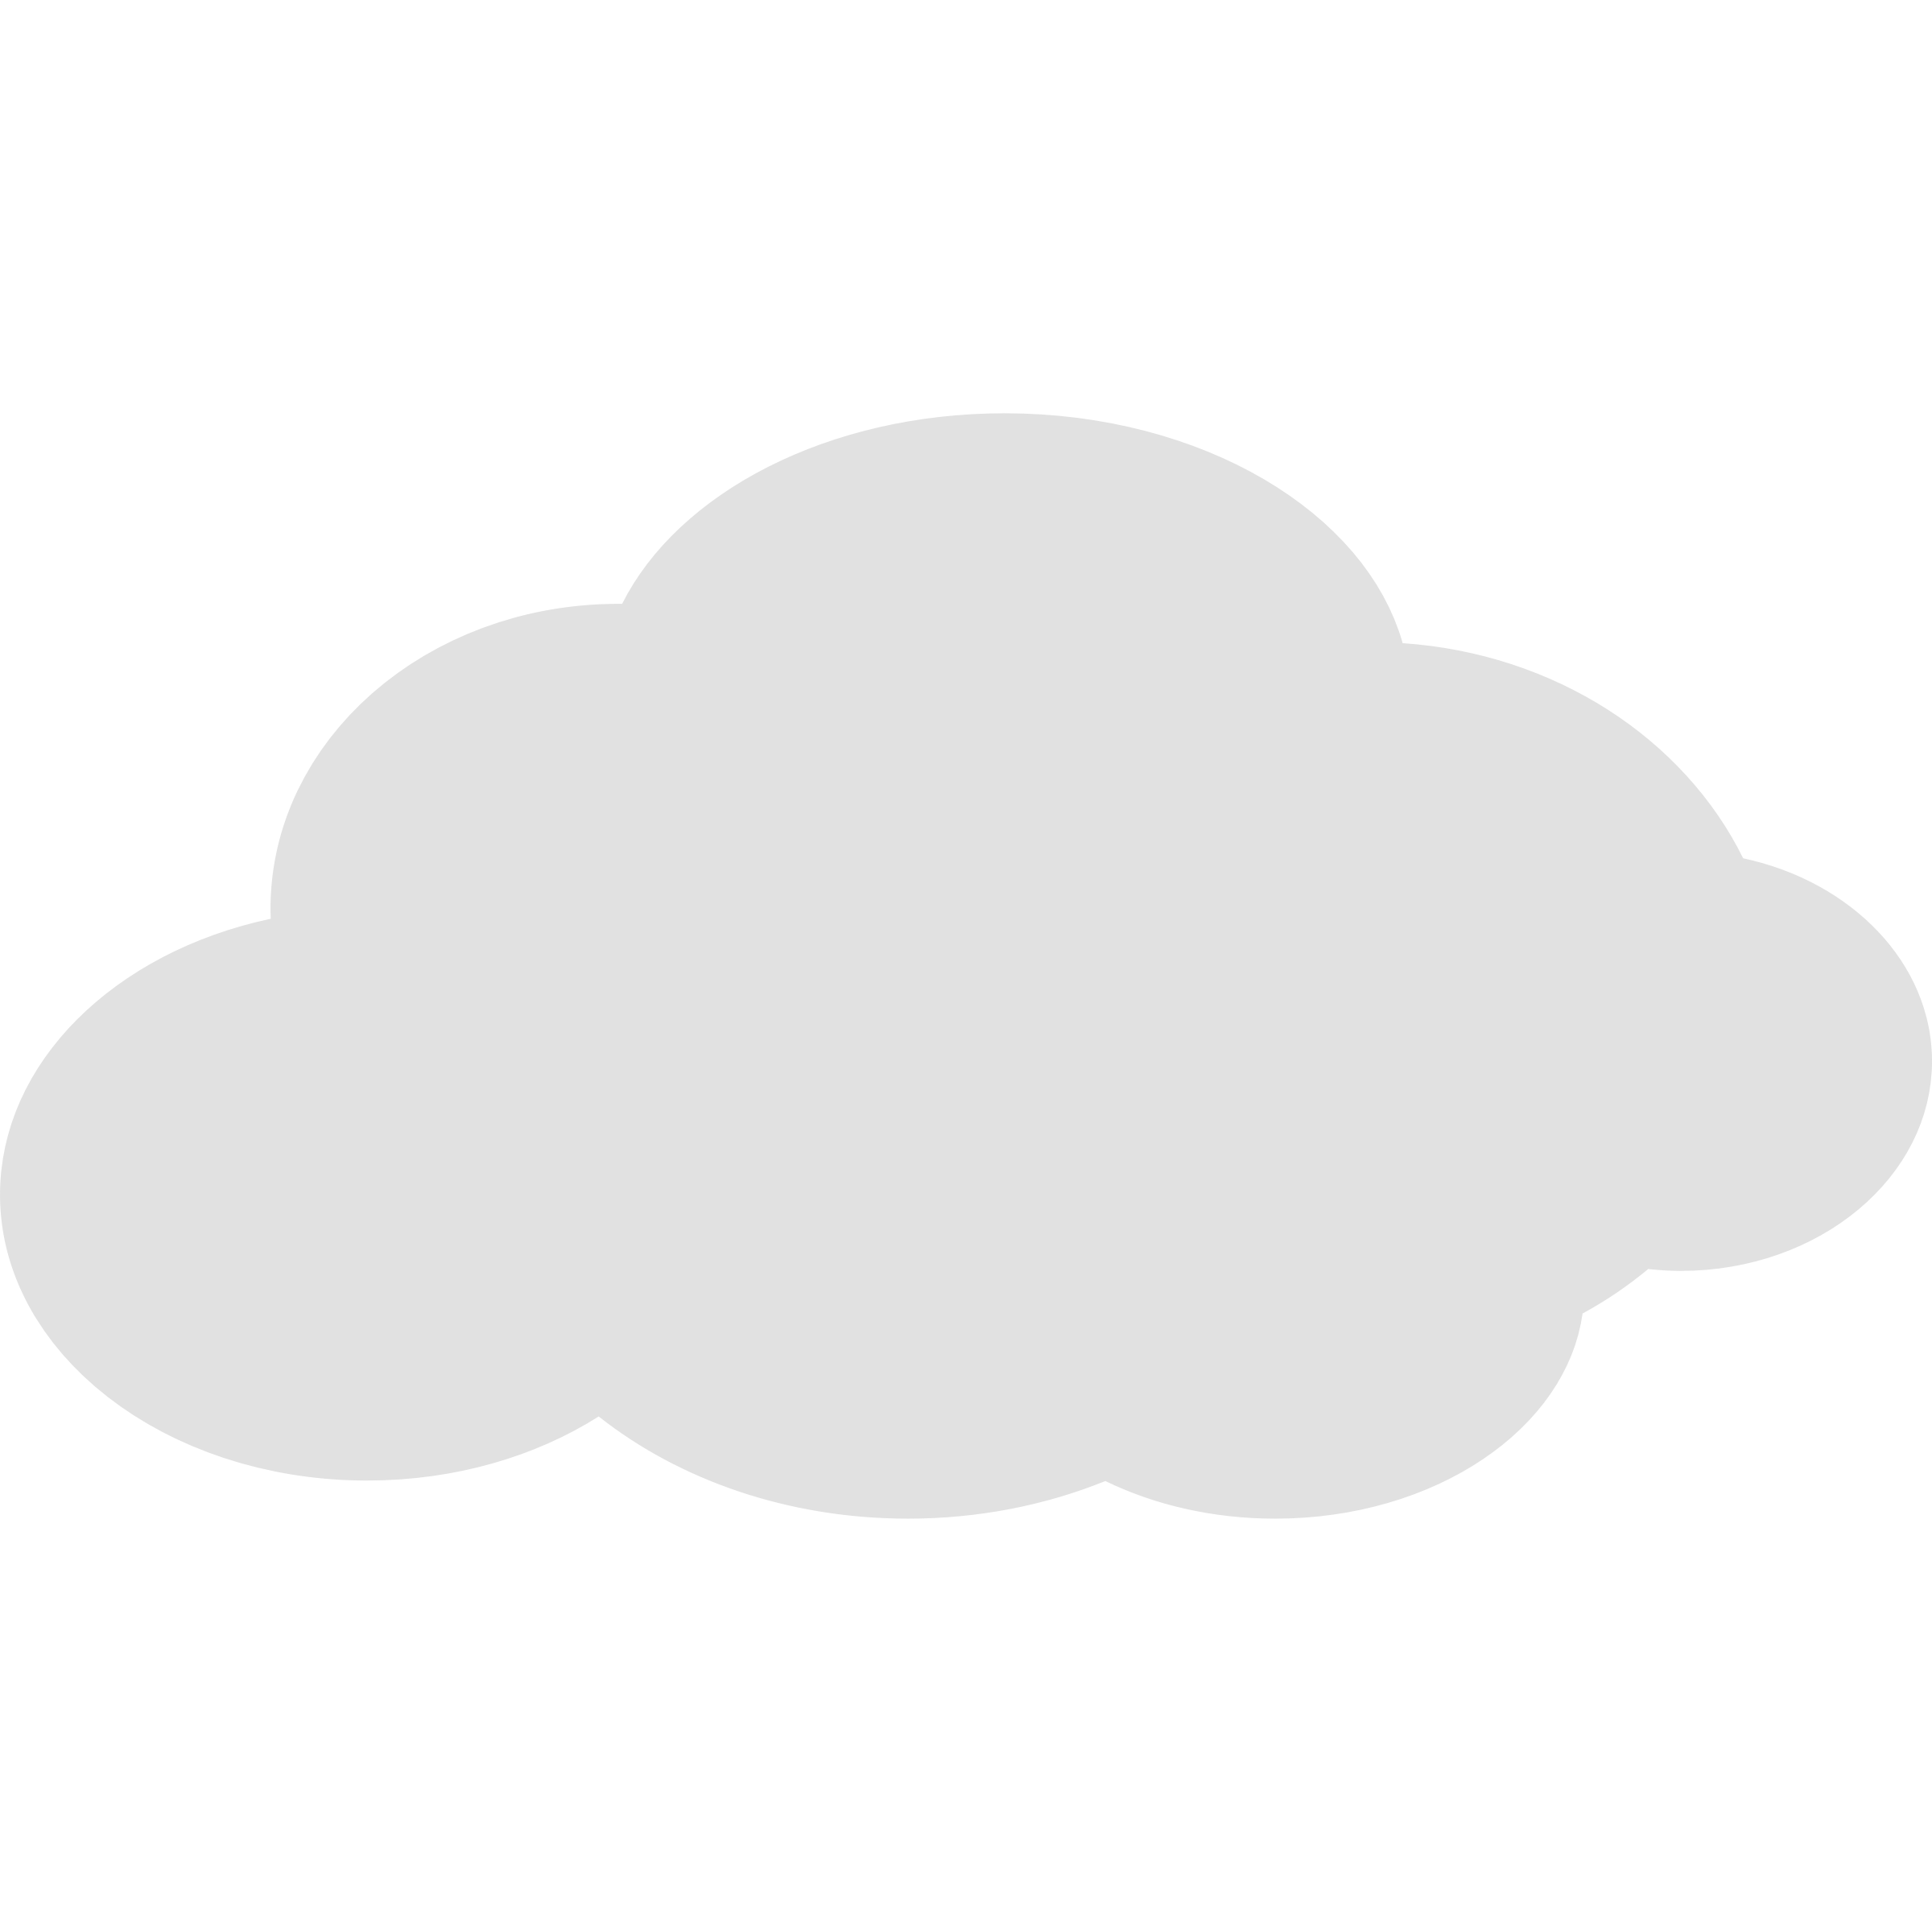 Clouds clipart simple Cliparting free Cloud Fluffy image